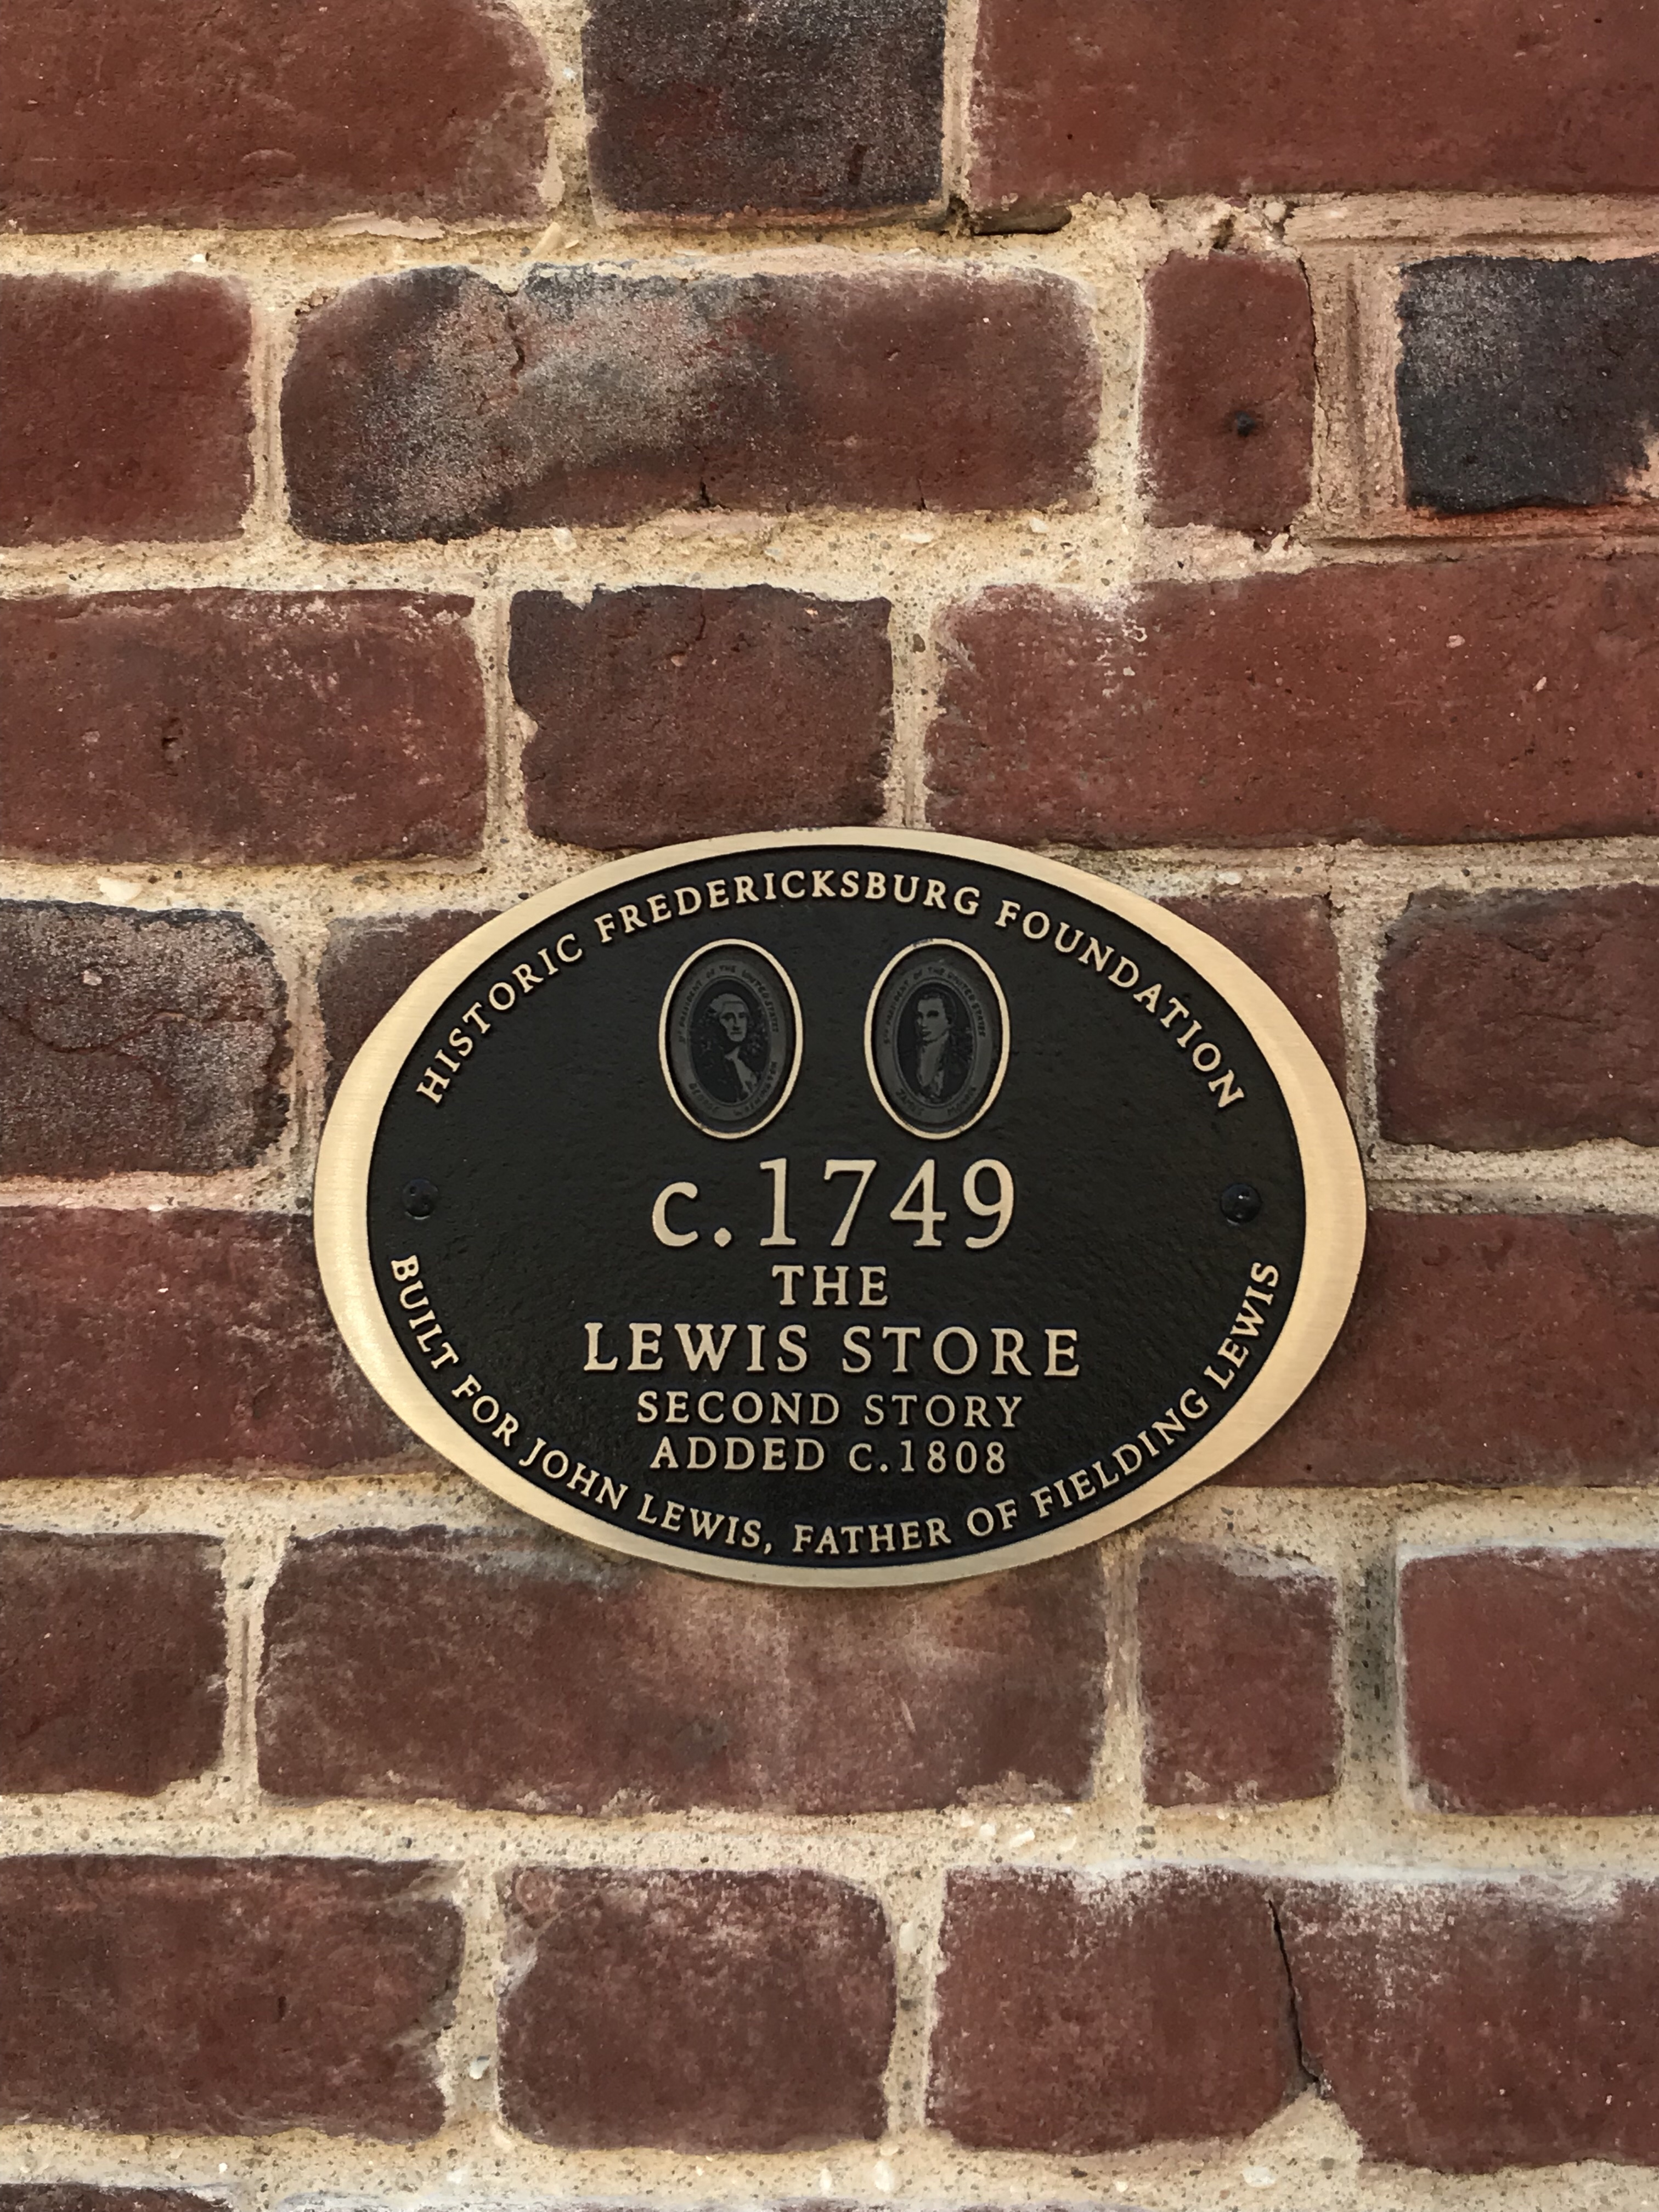 Picture of The Lewis Store building State Marker